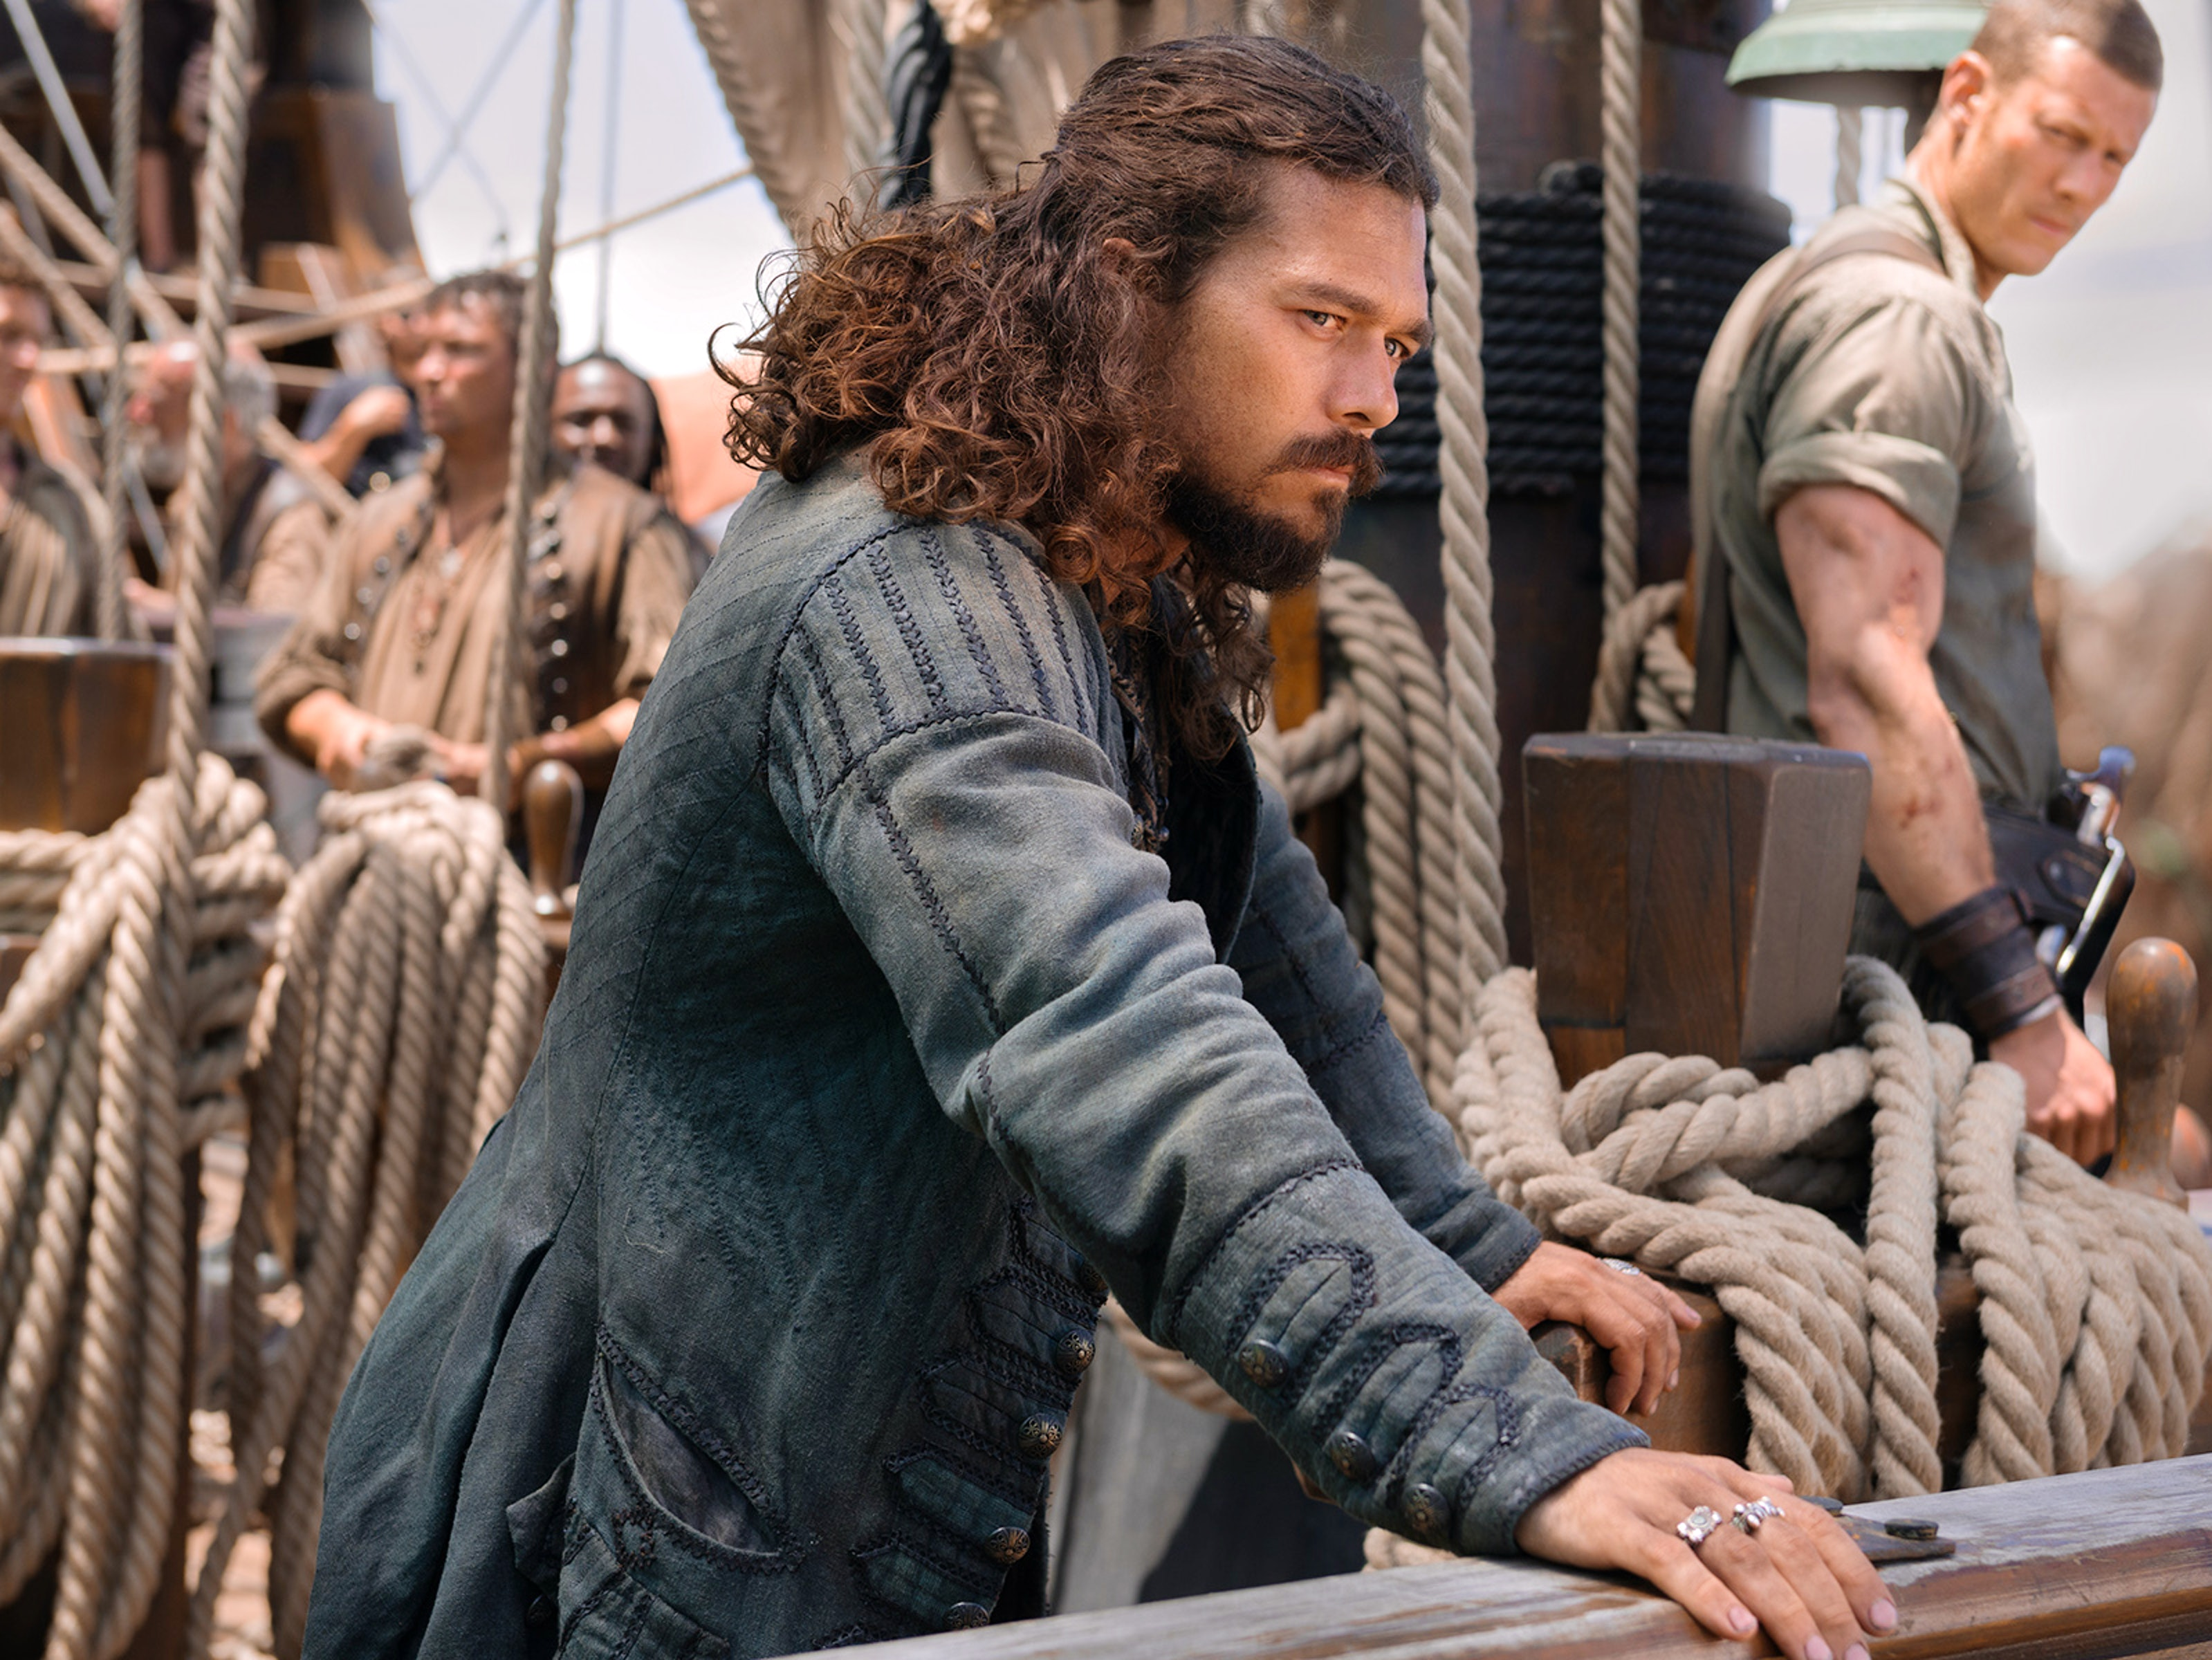 How 'Black Sails' Will Leave a Similar Legacy to 'The Wire'